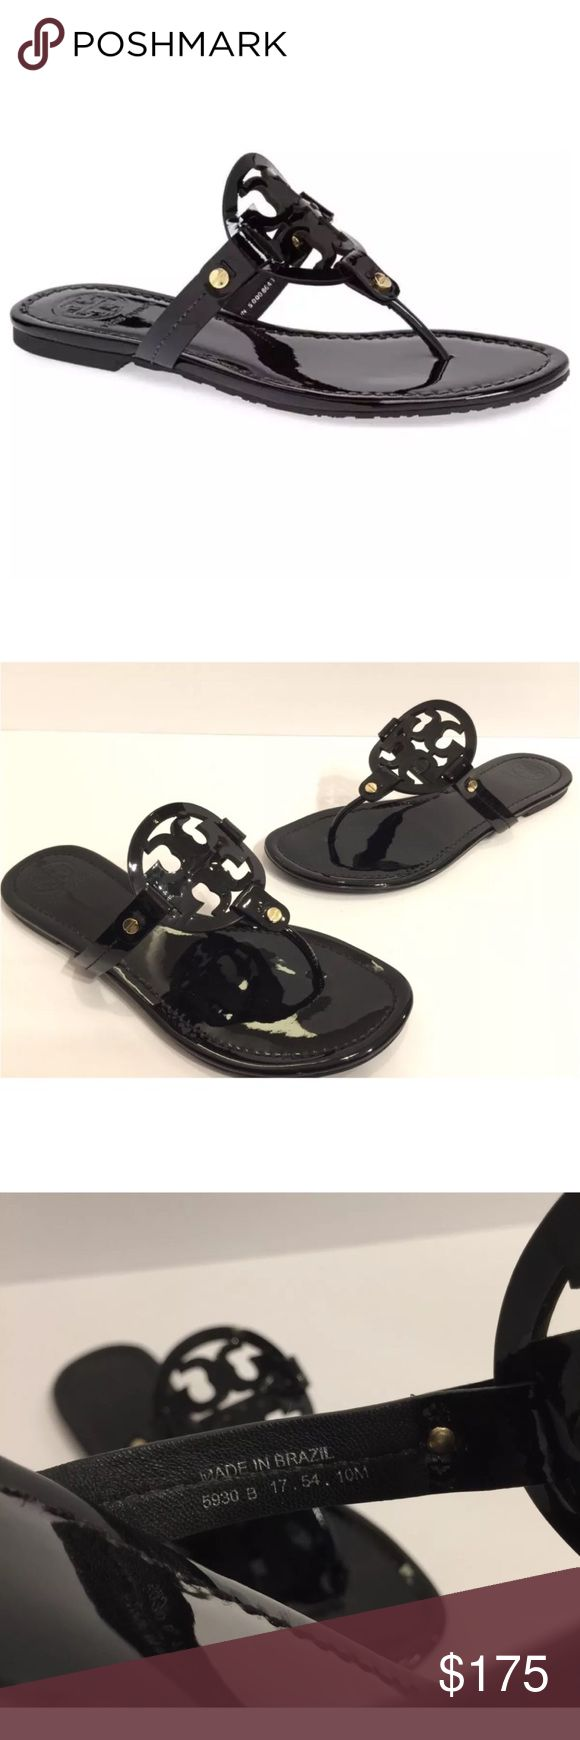 Tory Burch 'Miller' Flip Flop Black Patent A breezy, cleanly styled flip-flop features a bold logo cutout across the instep. A foam-cushioned footbed makes it a comfortable choice for long summertime days. Leather or synthetic upper/leather lining/rubber sole. By Tory Burch; made in Brazil. Salon Shoes. Excellent Condition, Celebrity Favorite! A must have Classy style. Please Check All Pictures, I will be more than happy to answer any Questions. Unfortunately No Box or Dust bag Tory Burch…